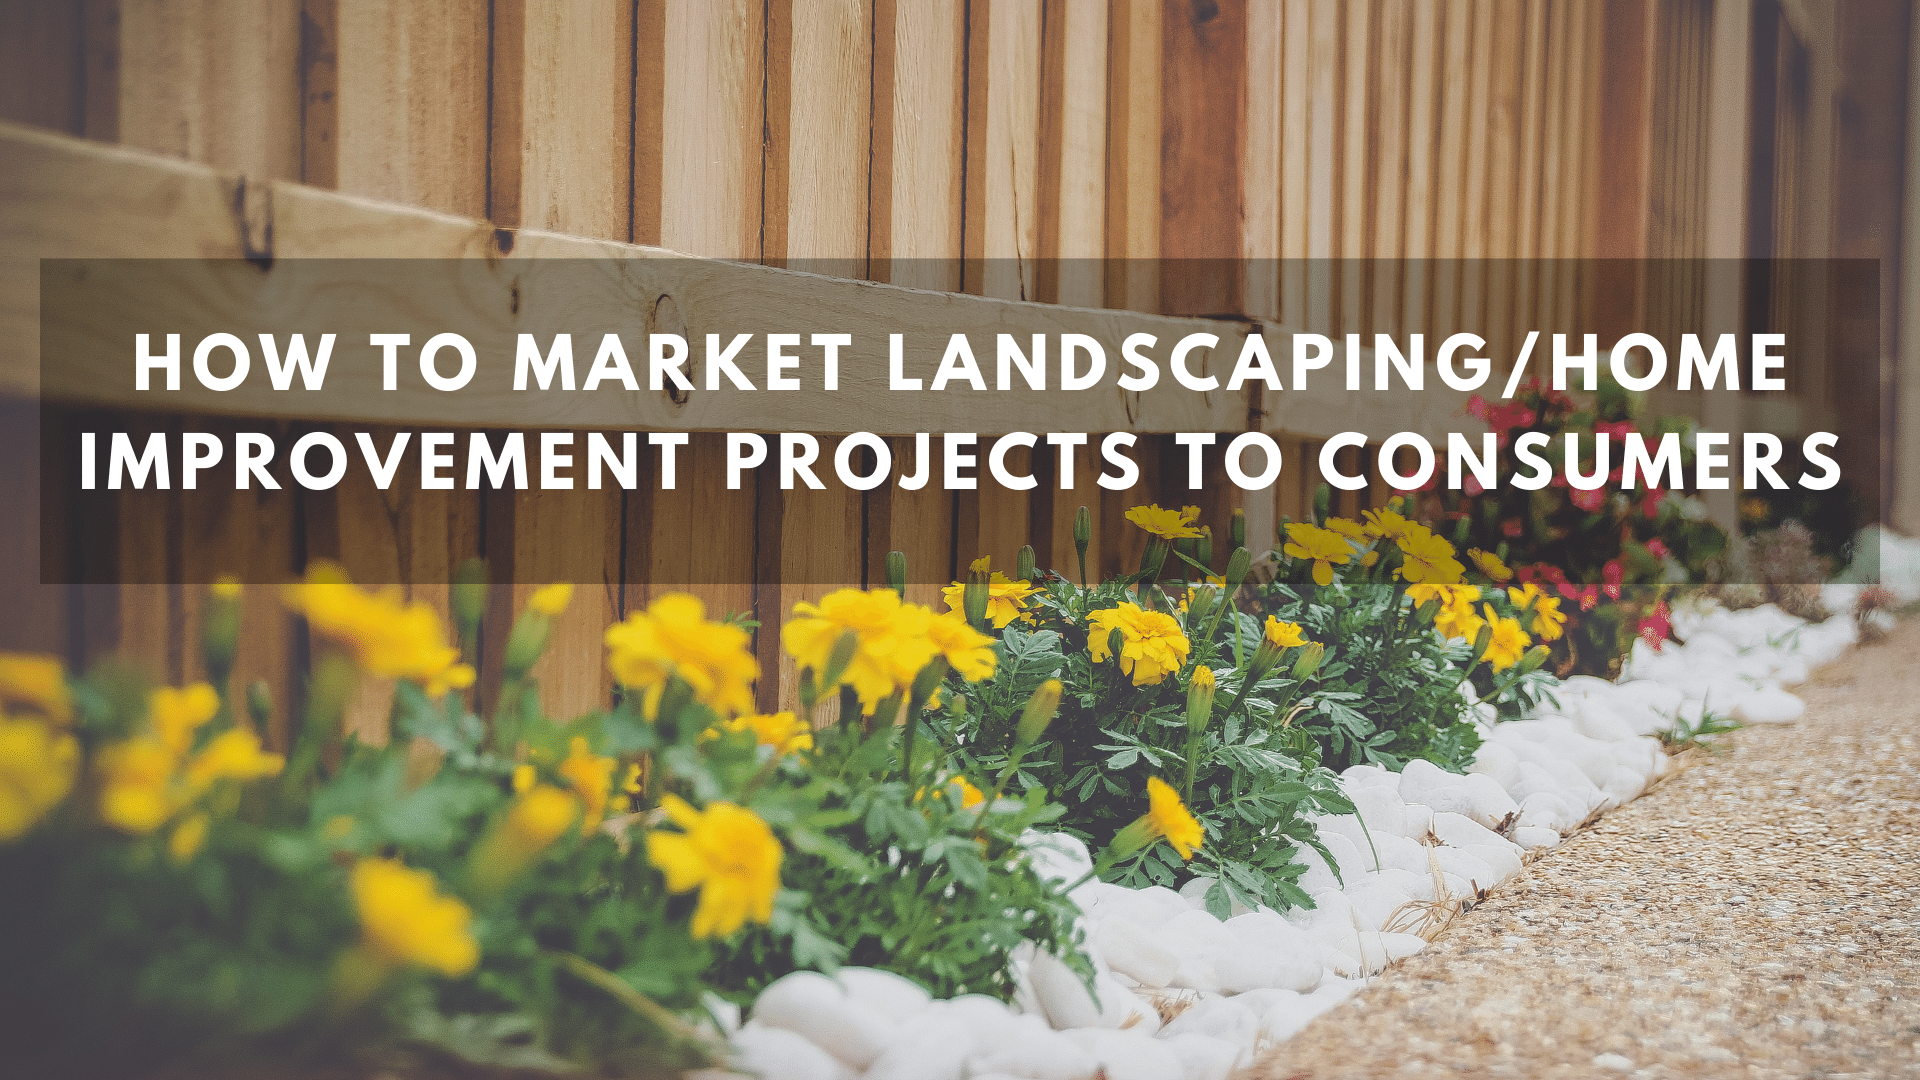 How To Market Landscaping/Home Improvement Projects To Consumers